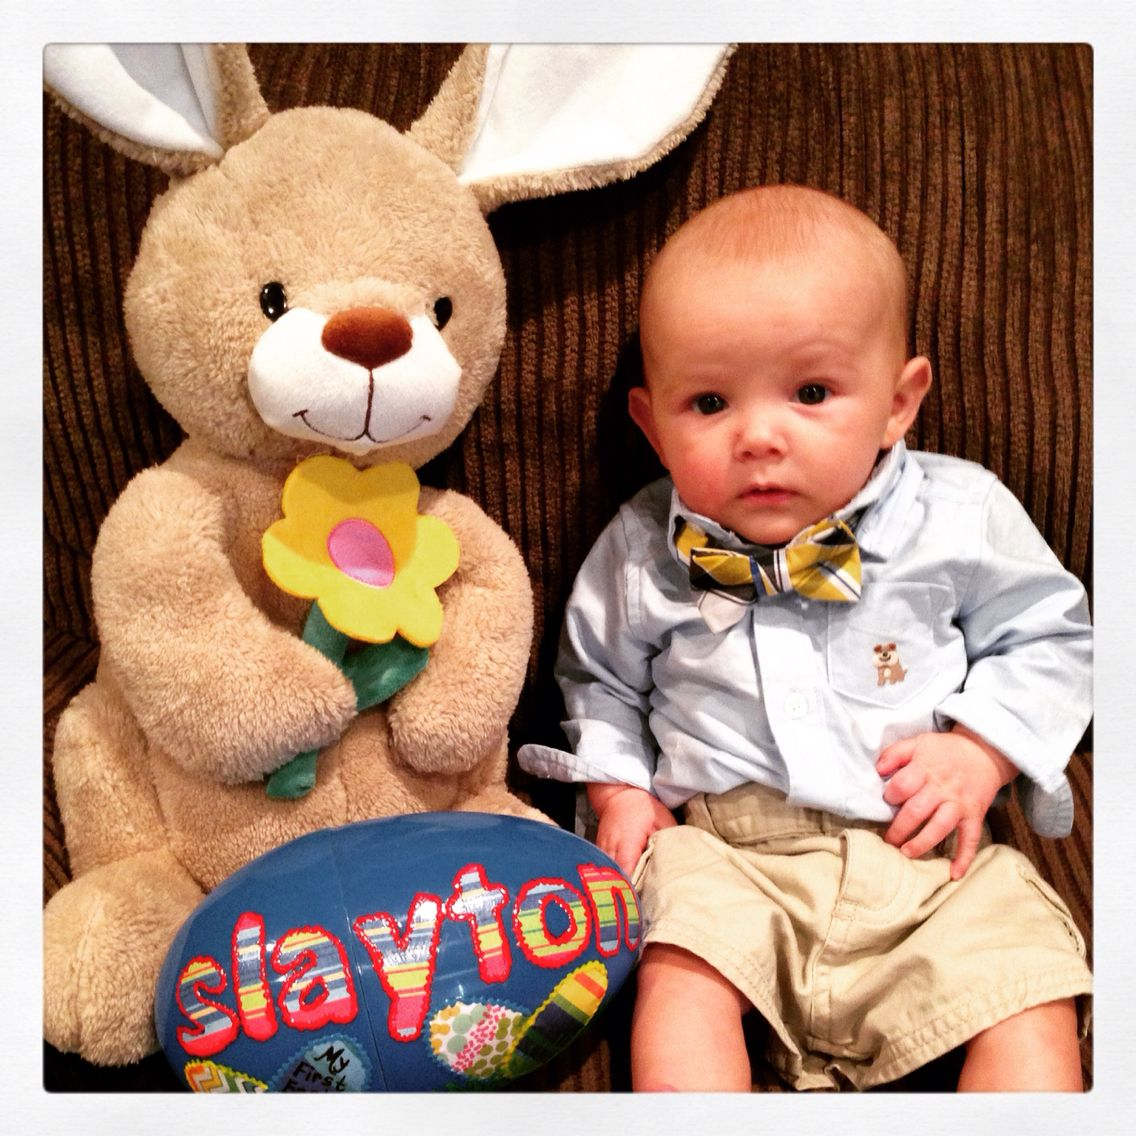 Slayton on Easter this year. 3 months old and rocking a bow tie!